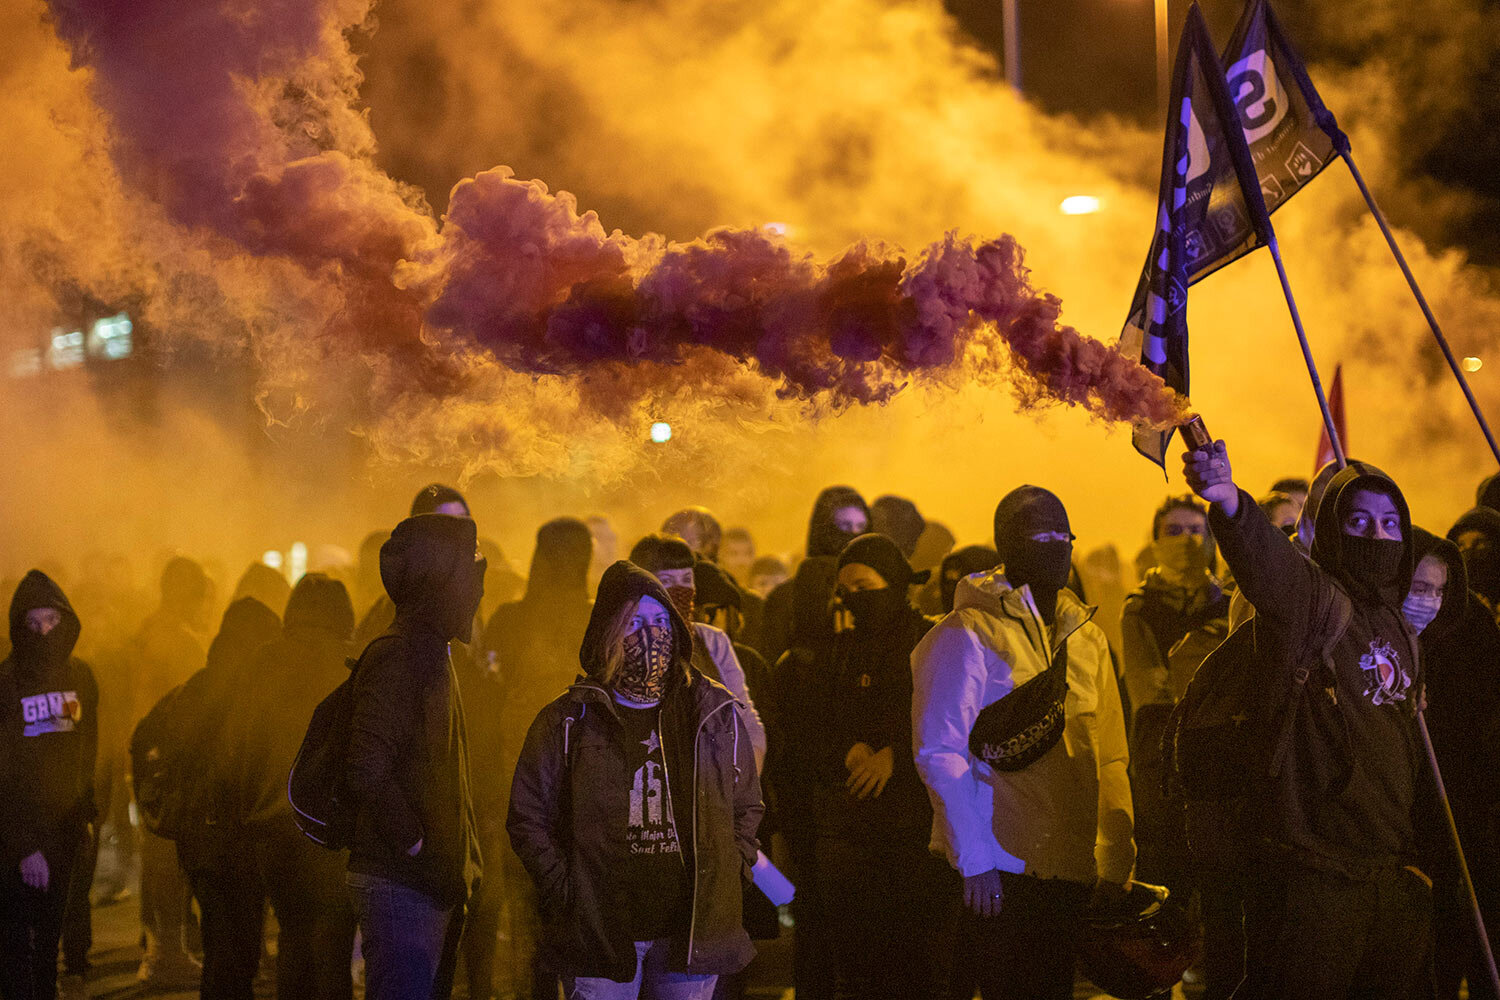 Pro-independence demonstrators, some of them holding flares, march as they take part in a protest in Girona, Spain, Tuesday Oct. 1, 2019. (AP Photo/Emilio Morenatti)